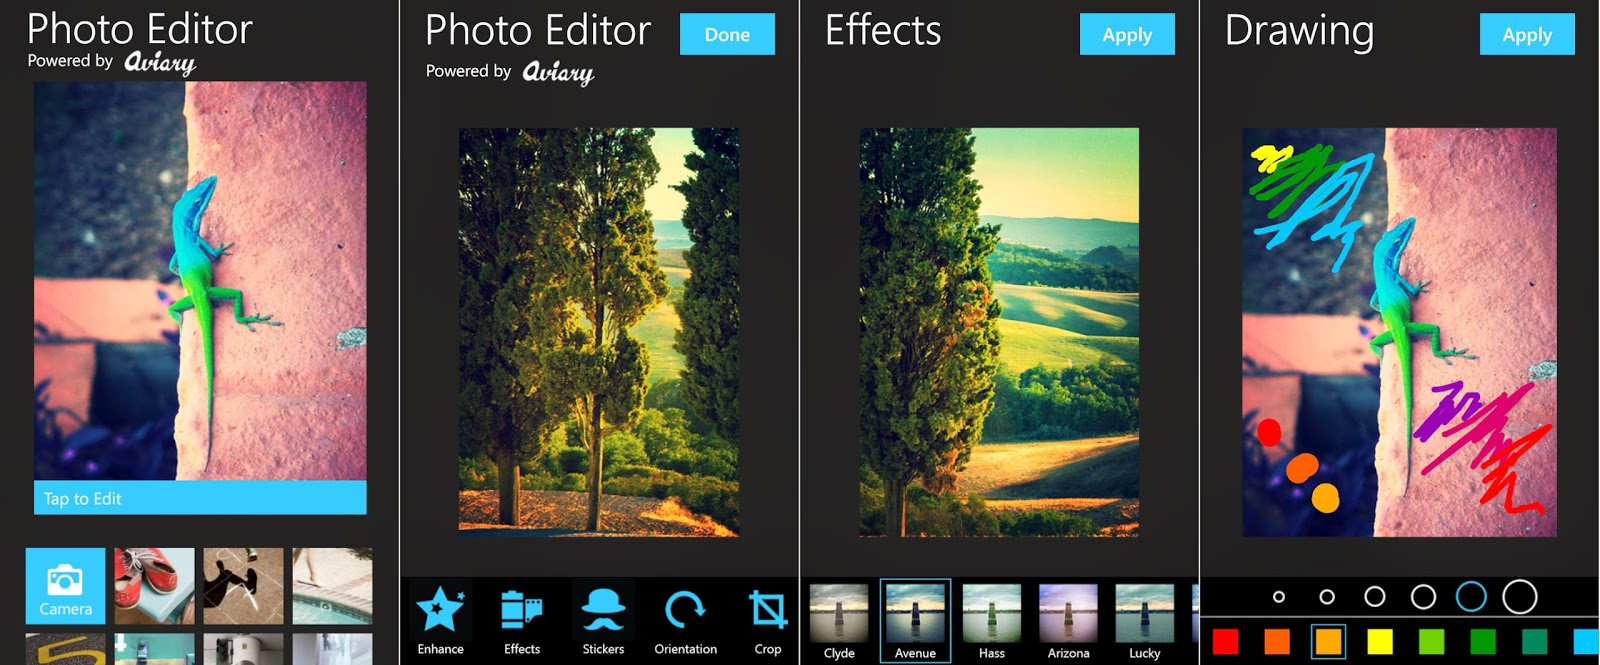 Top 10 Free Photo Editing Apps For Android Users